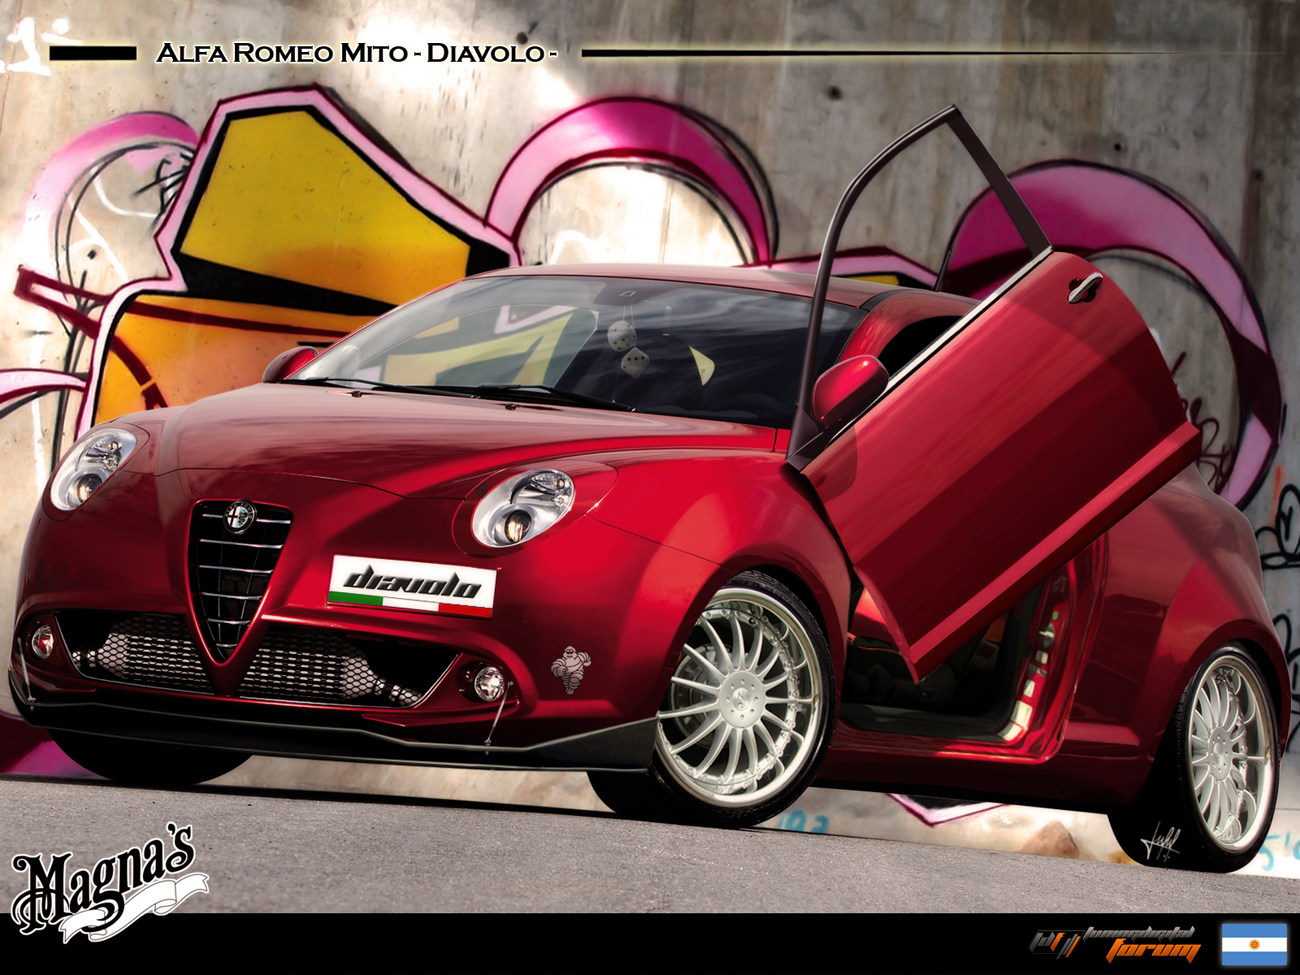 karosserie aerodynamik gta heck alfa romeo forum. Black Bedroom Furniture Sets. Home Design Ideas